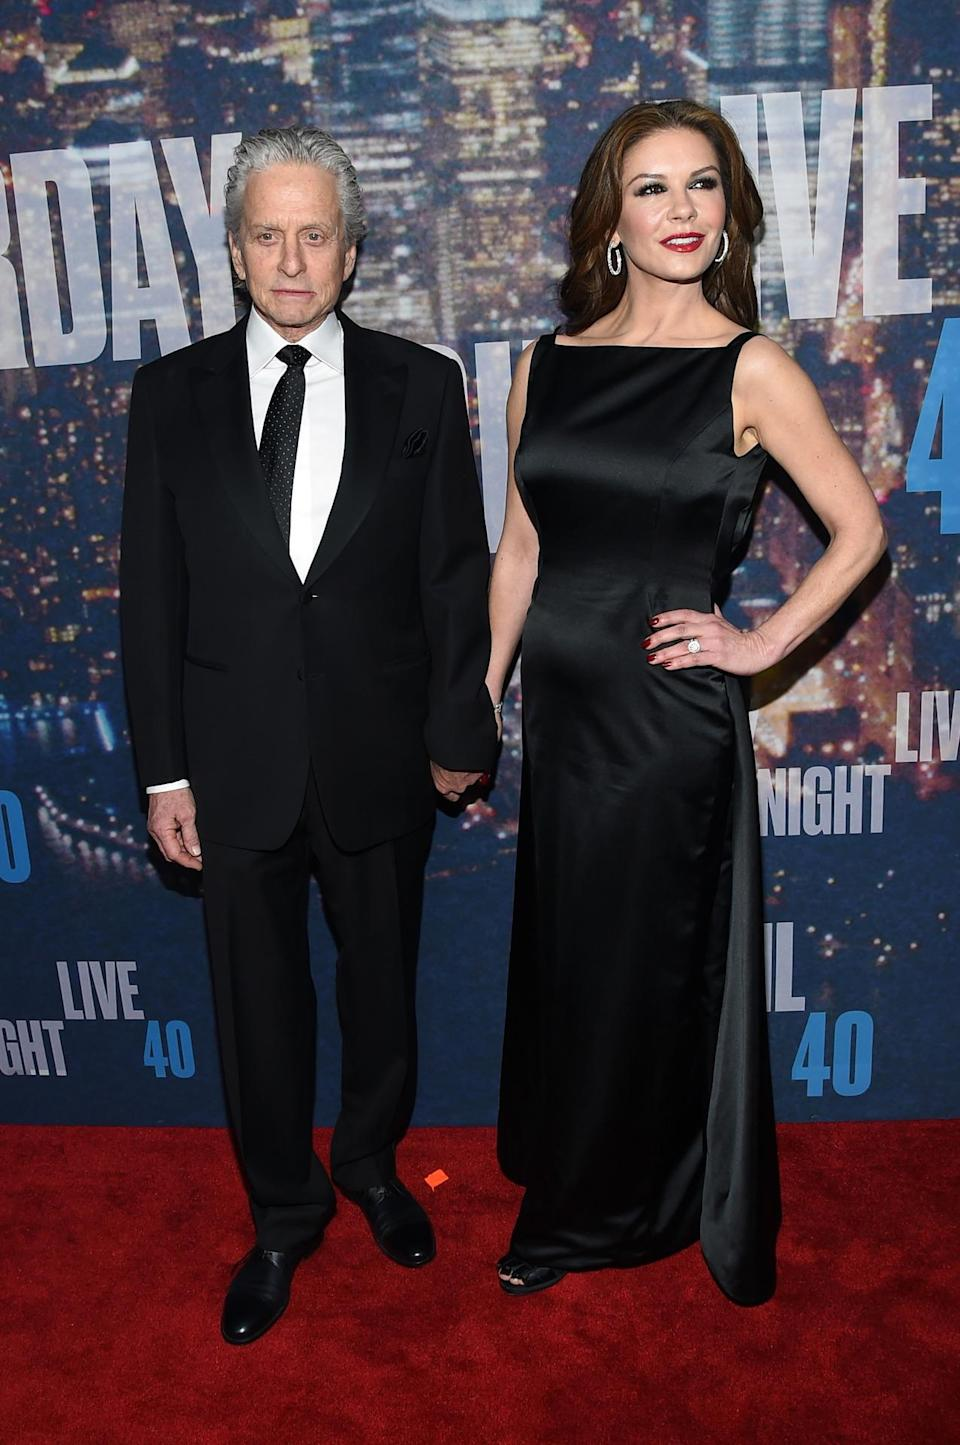 Michael Douglas and Catherine Zeta-Jones looked regal (and more like the Duke and Duchess of Cambridge than a pair of actors) on Sunday night.